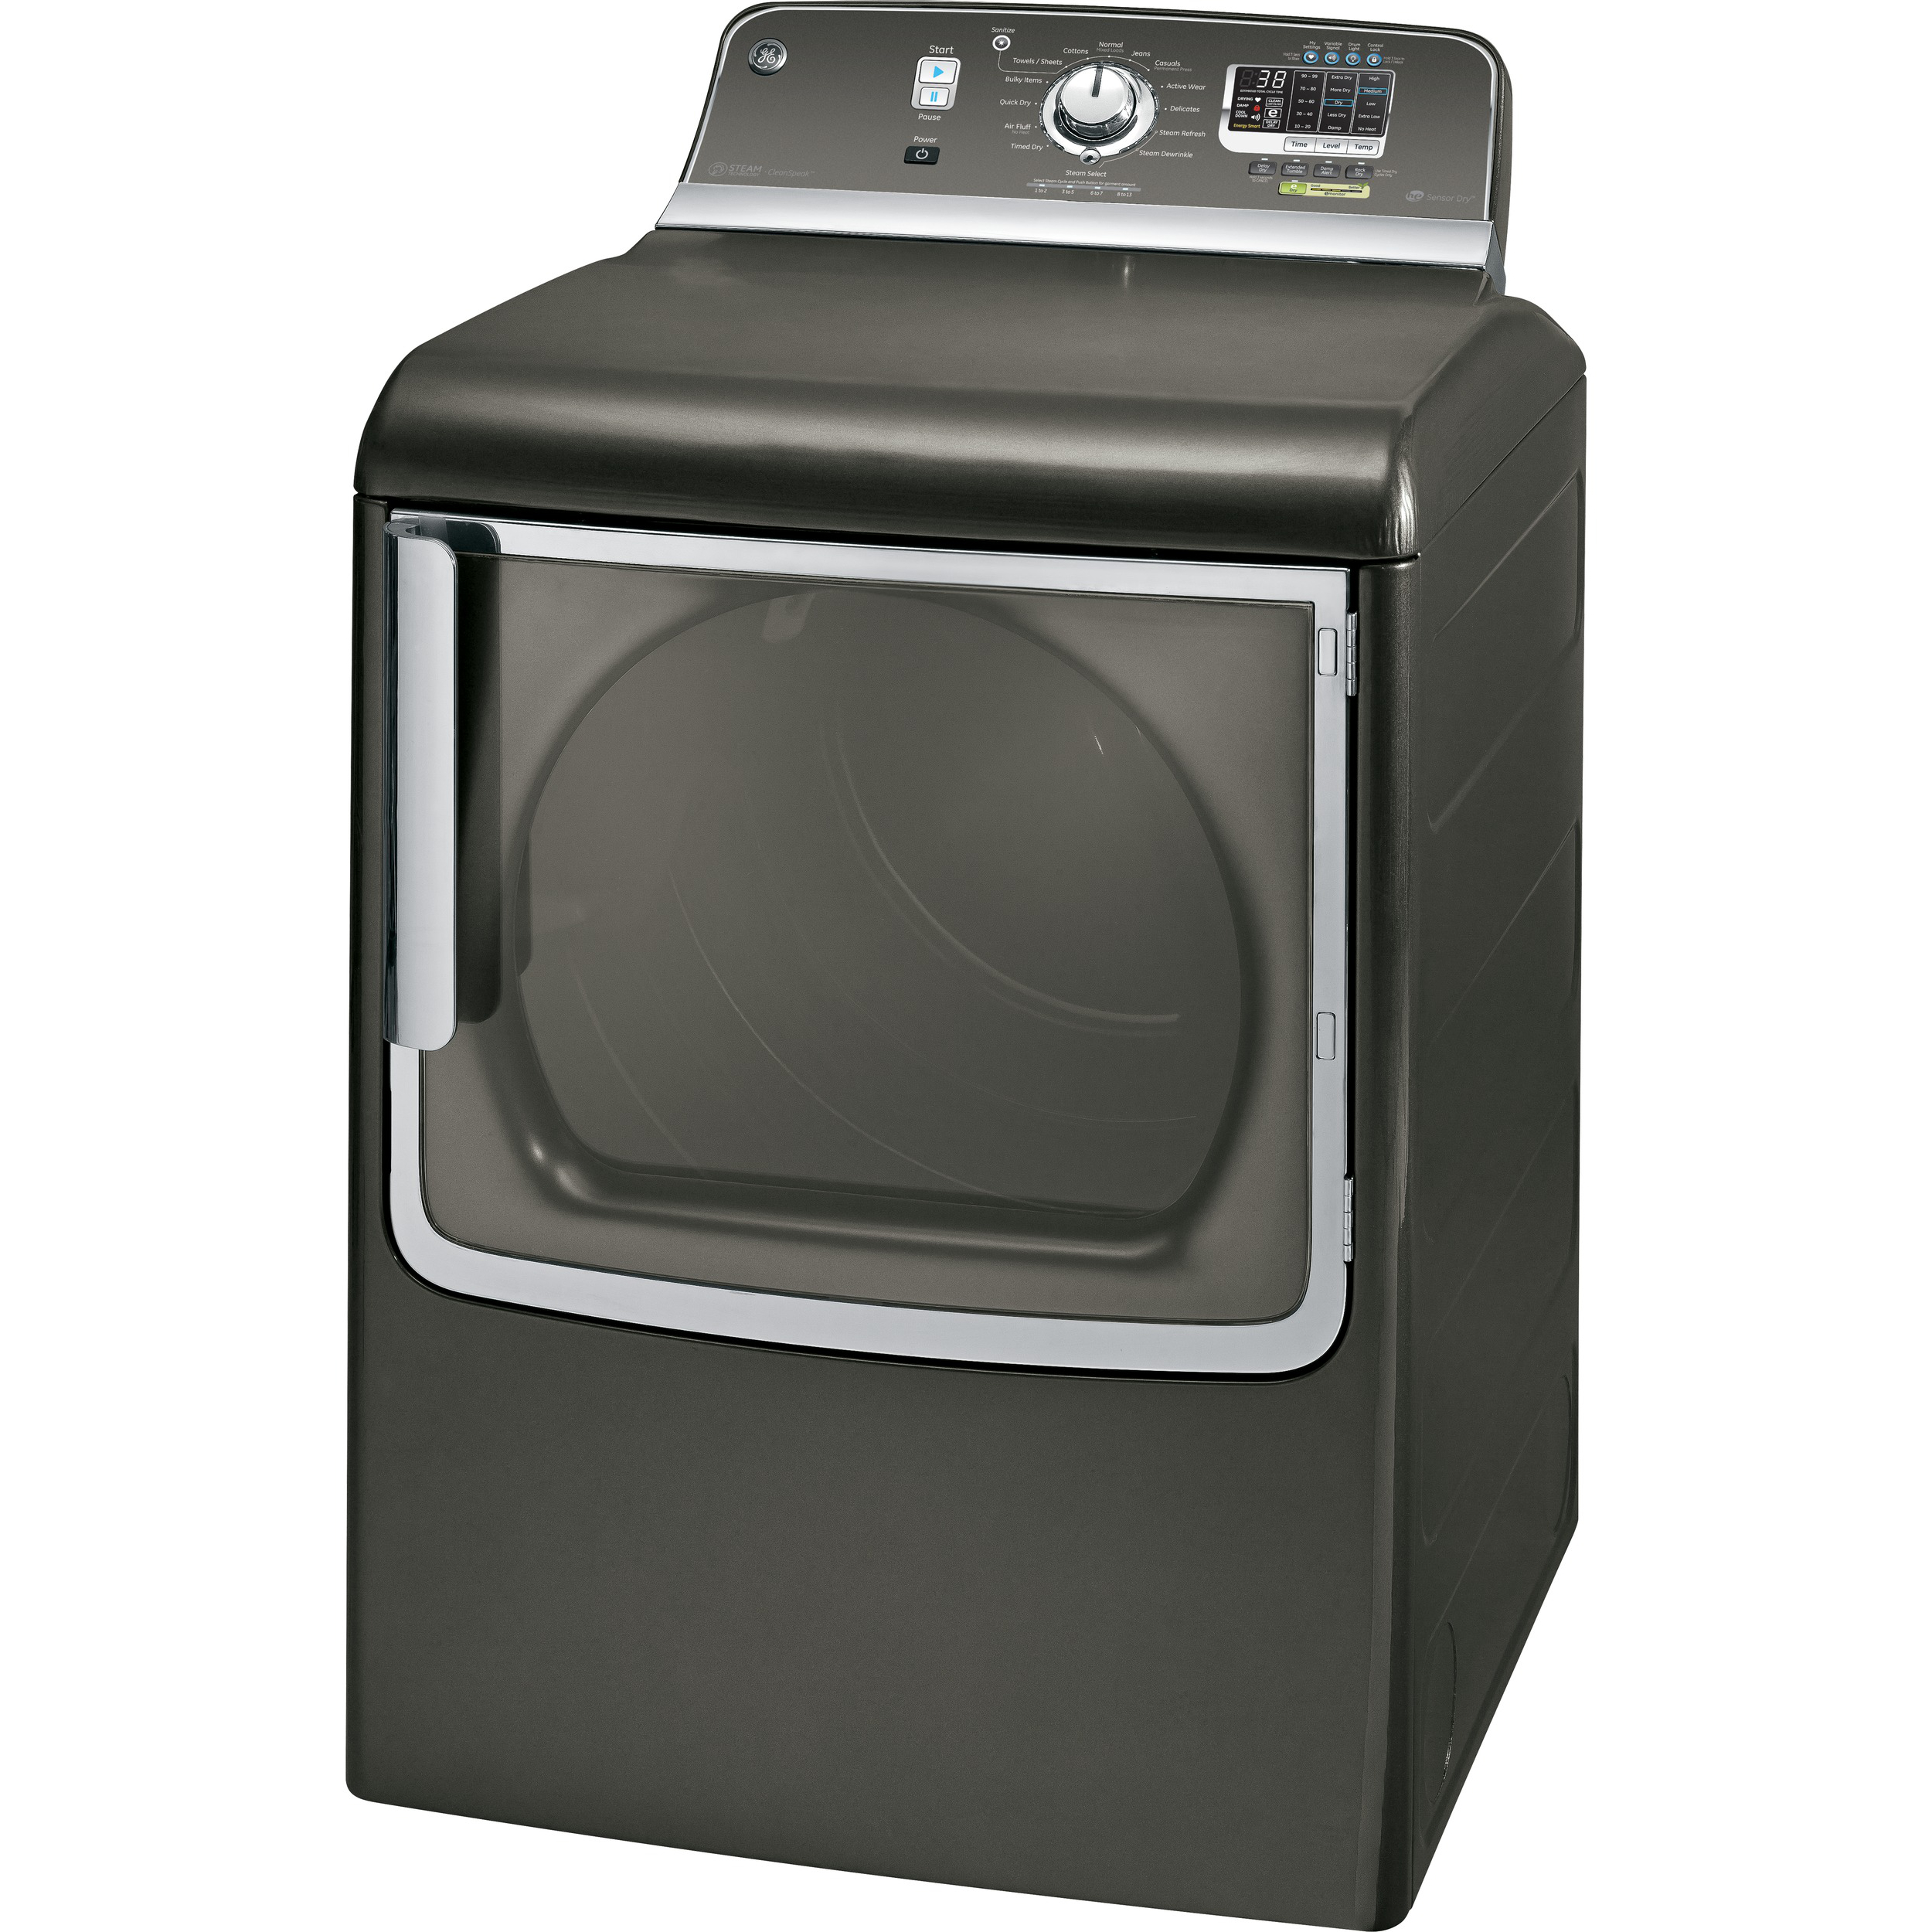 GE 7.8 cu. ft. Electric Dryer - Metallic Carbon